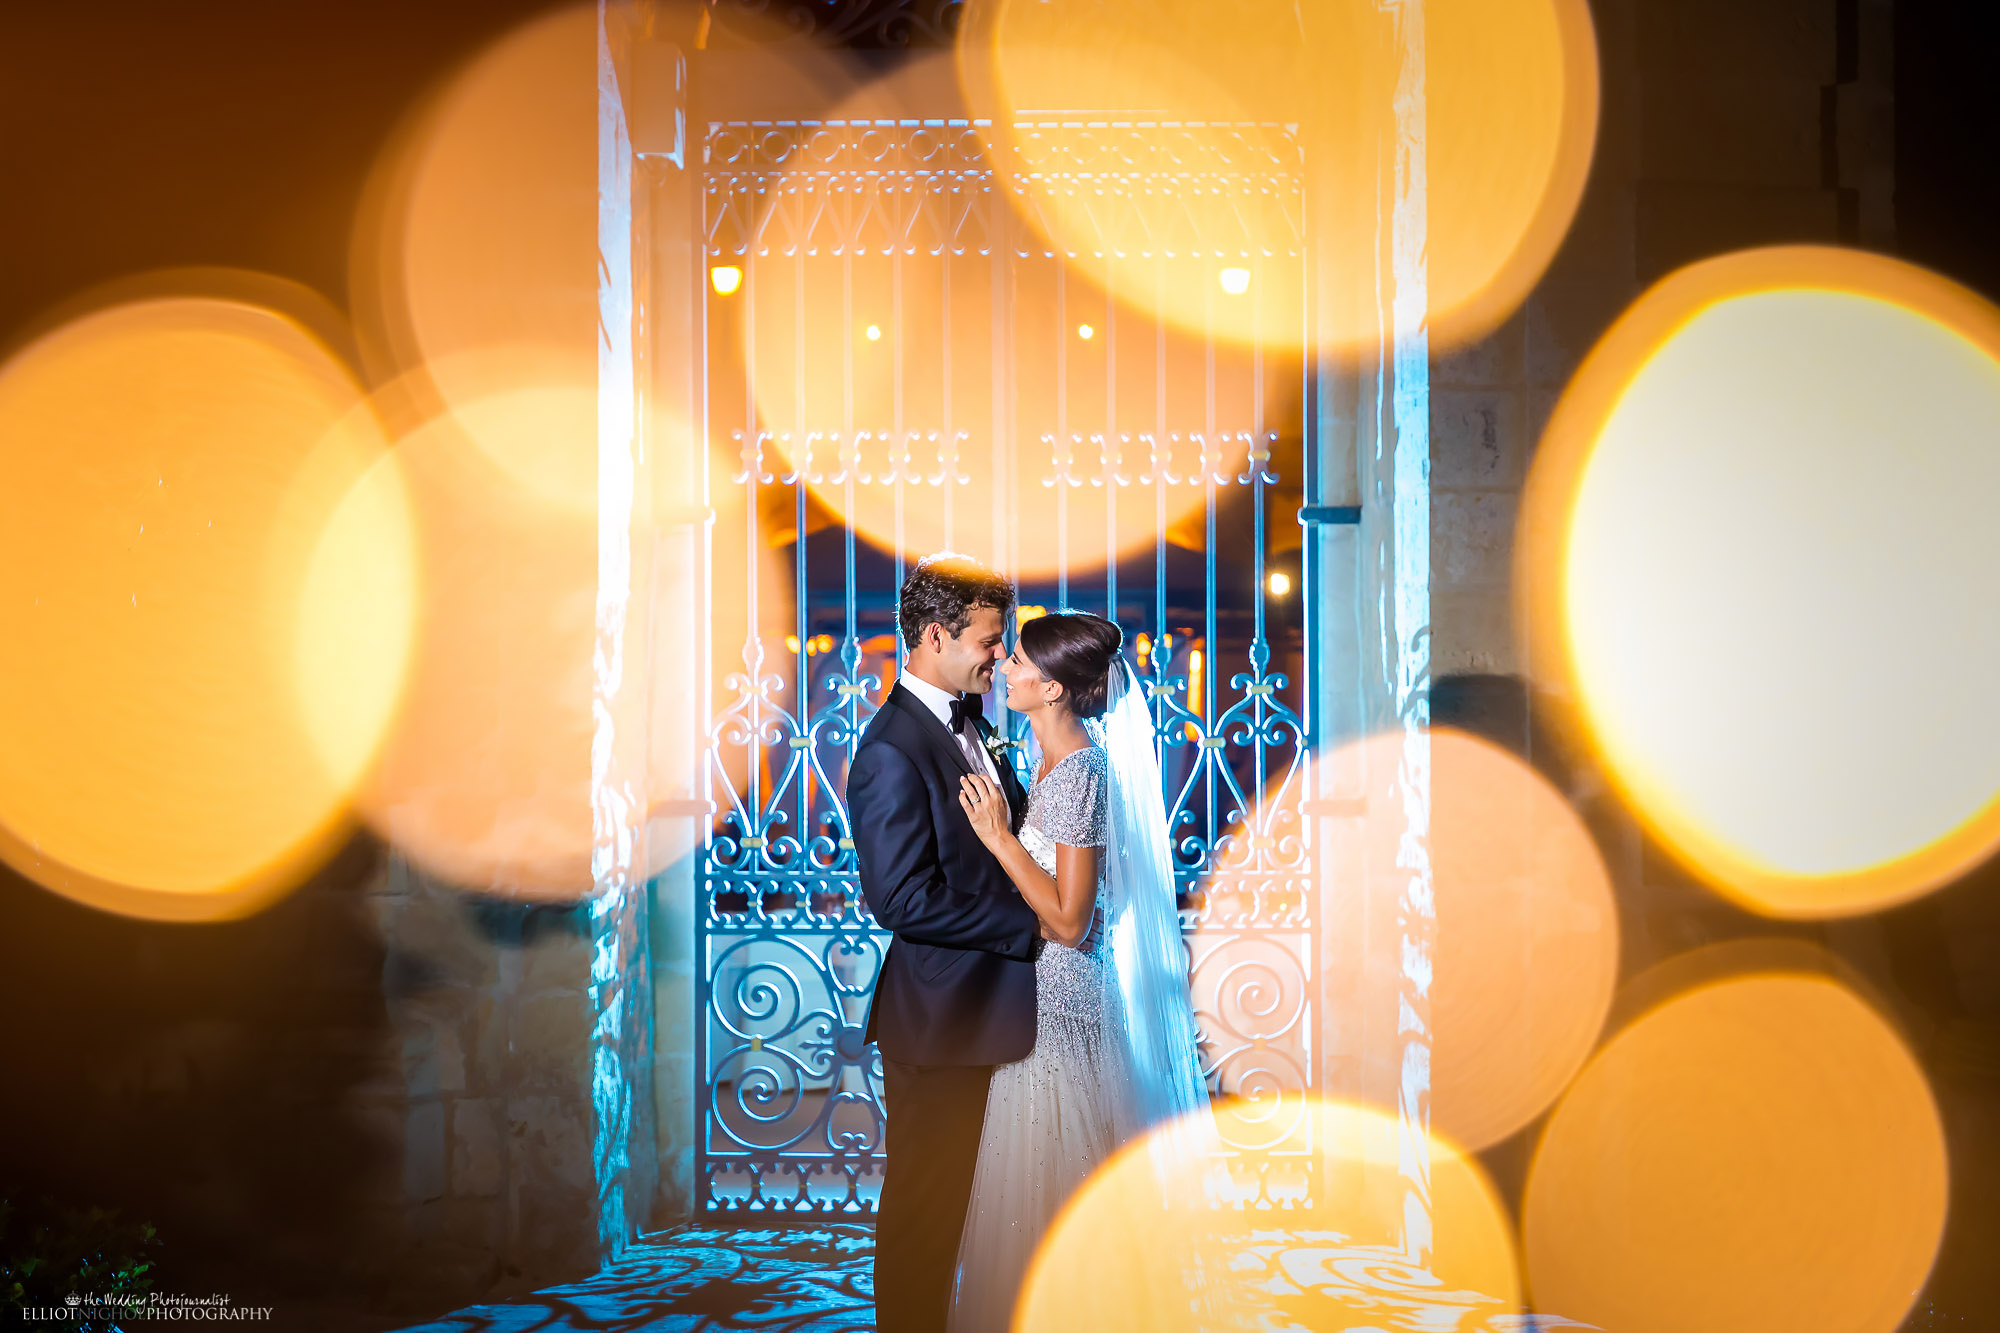 Bride and groom's portrait shot through fairy lights. Photo by North East based wedding photojournalist Elliot Nichol.